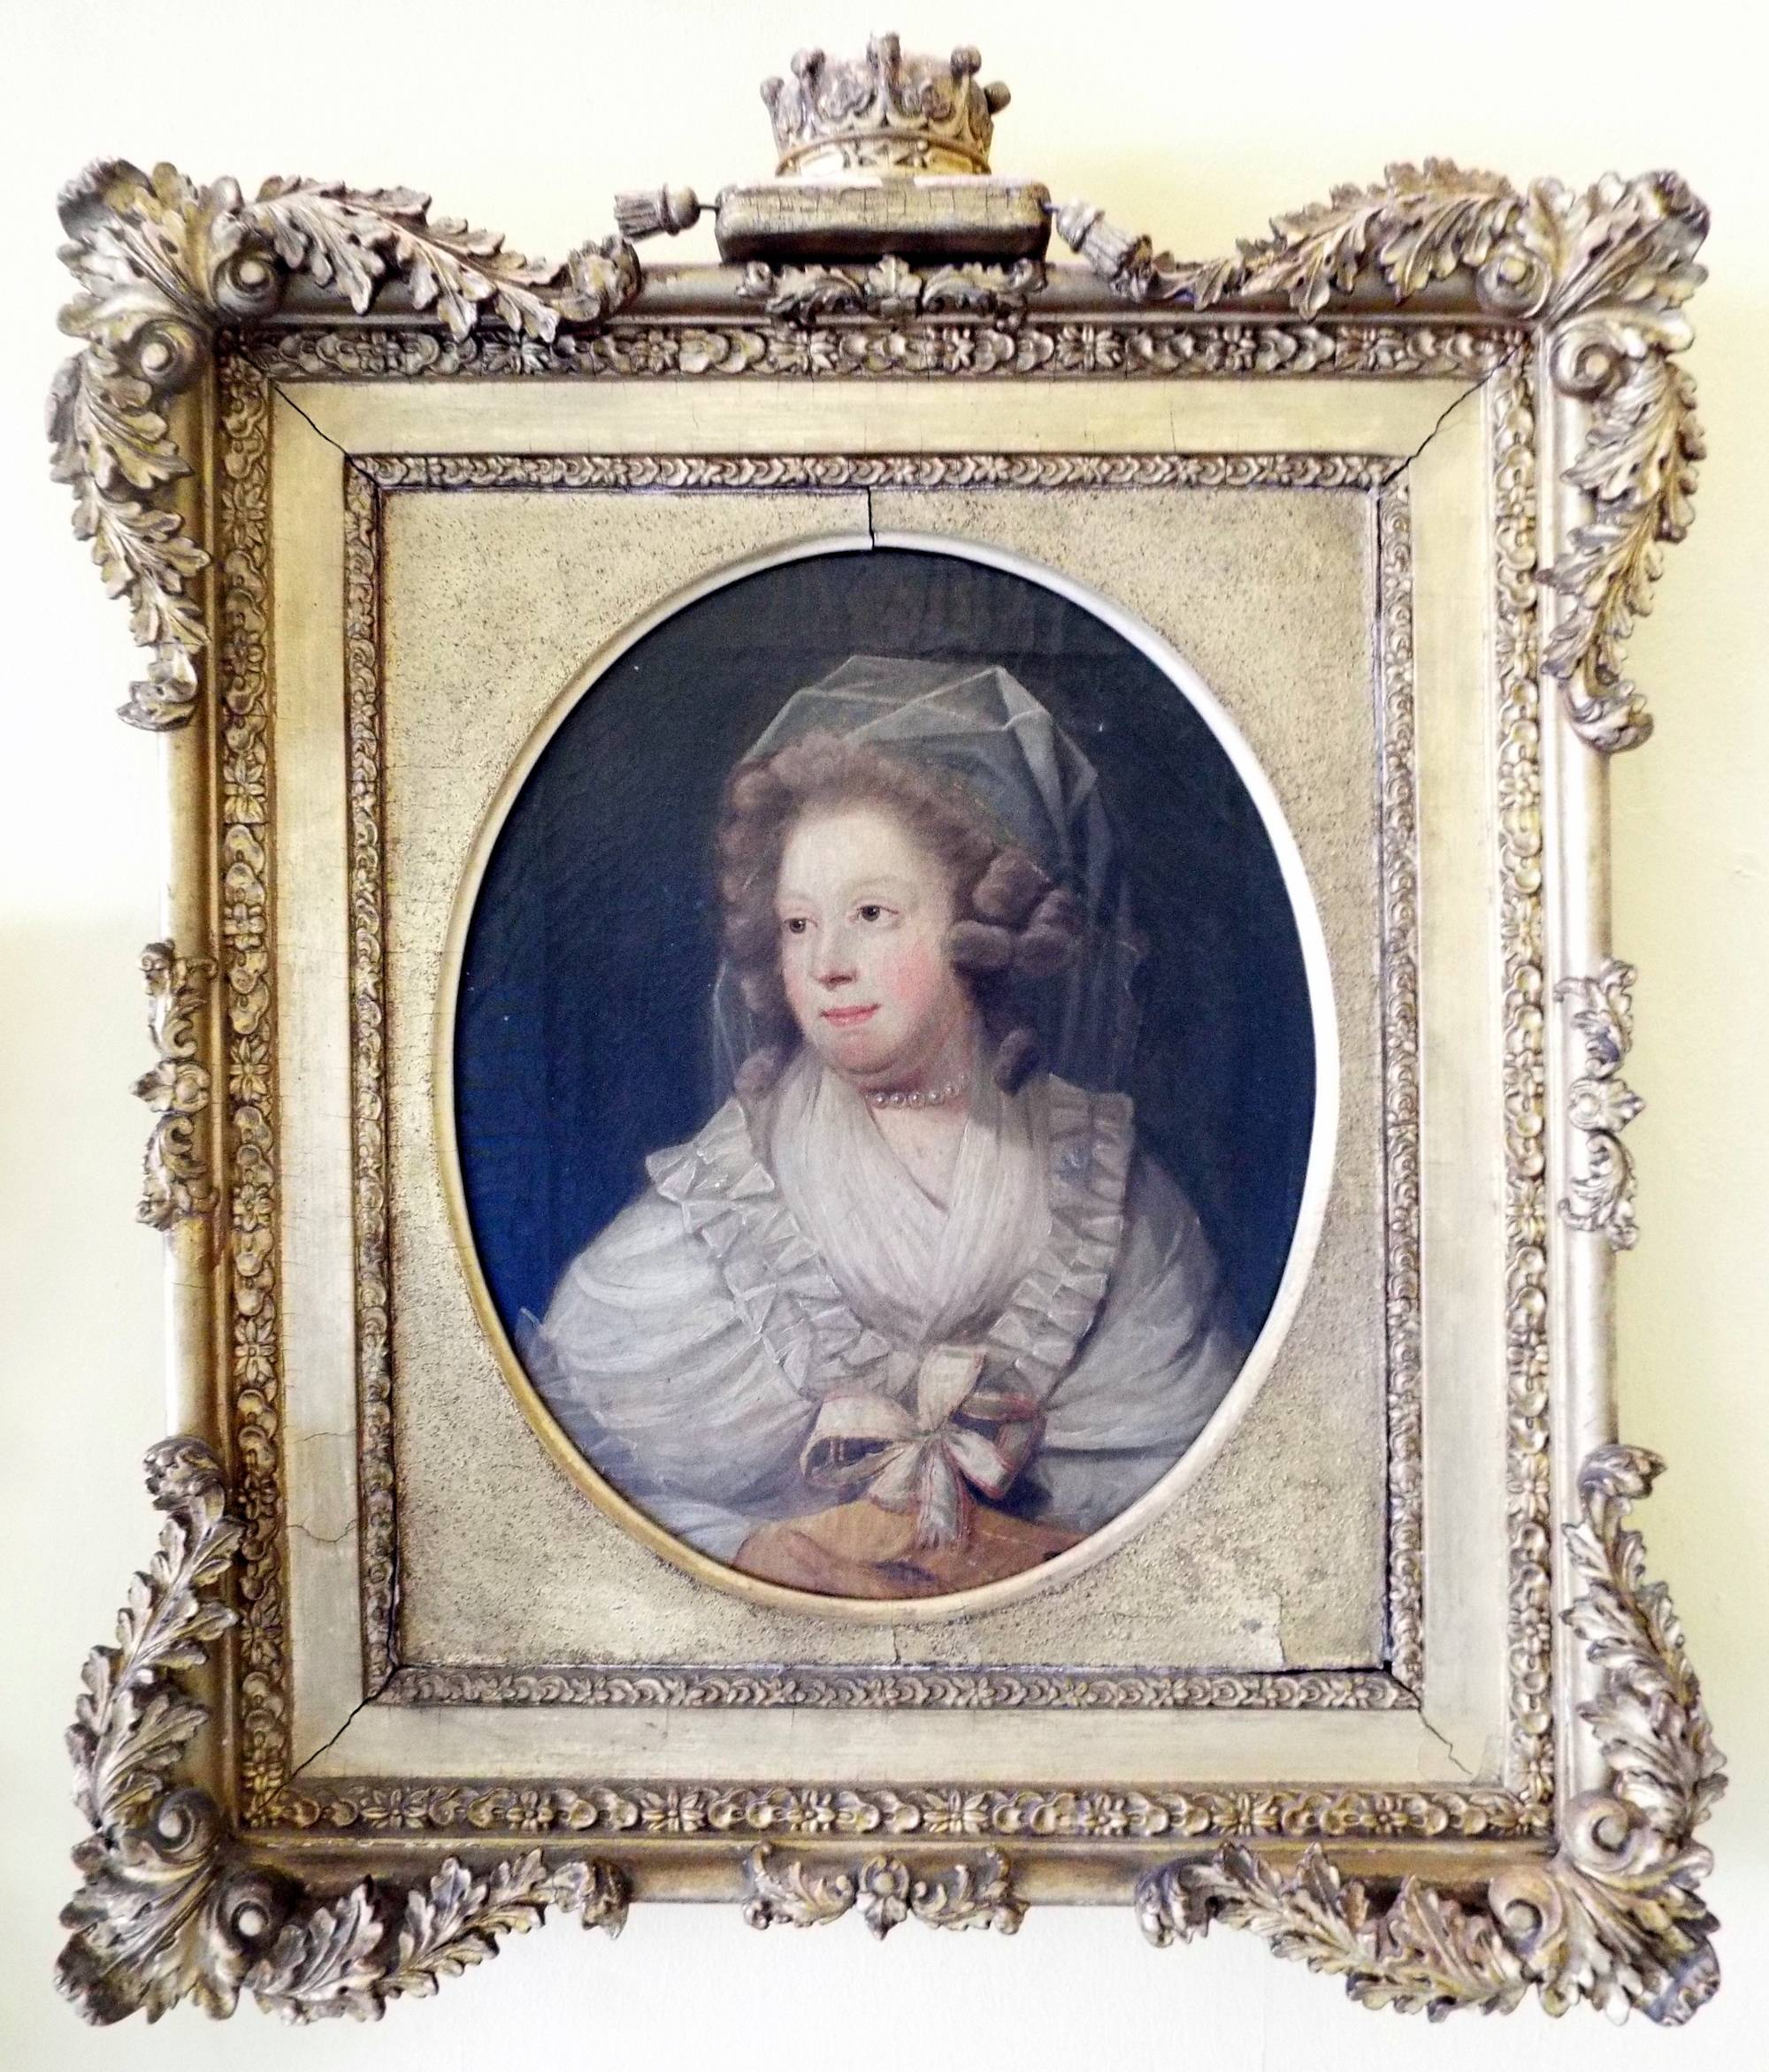 Mary Caulfeild (née Hickman), Countess of Charlemont, probably by an artist in the circle of John Downman (1750-1824). The Hunt Museum, Limerick.